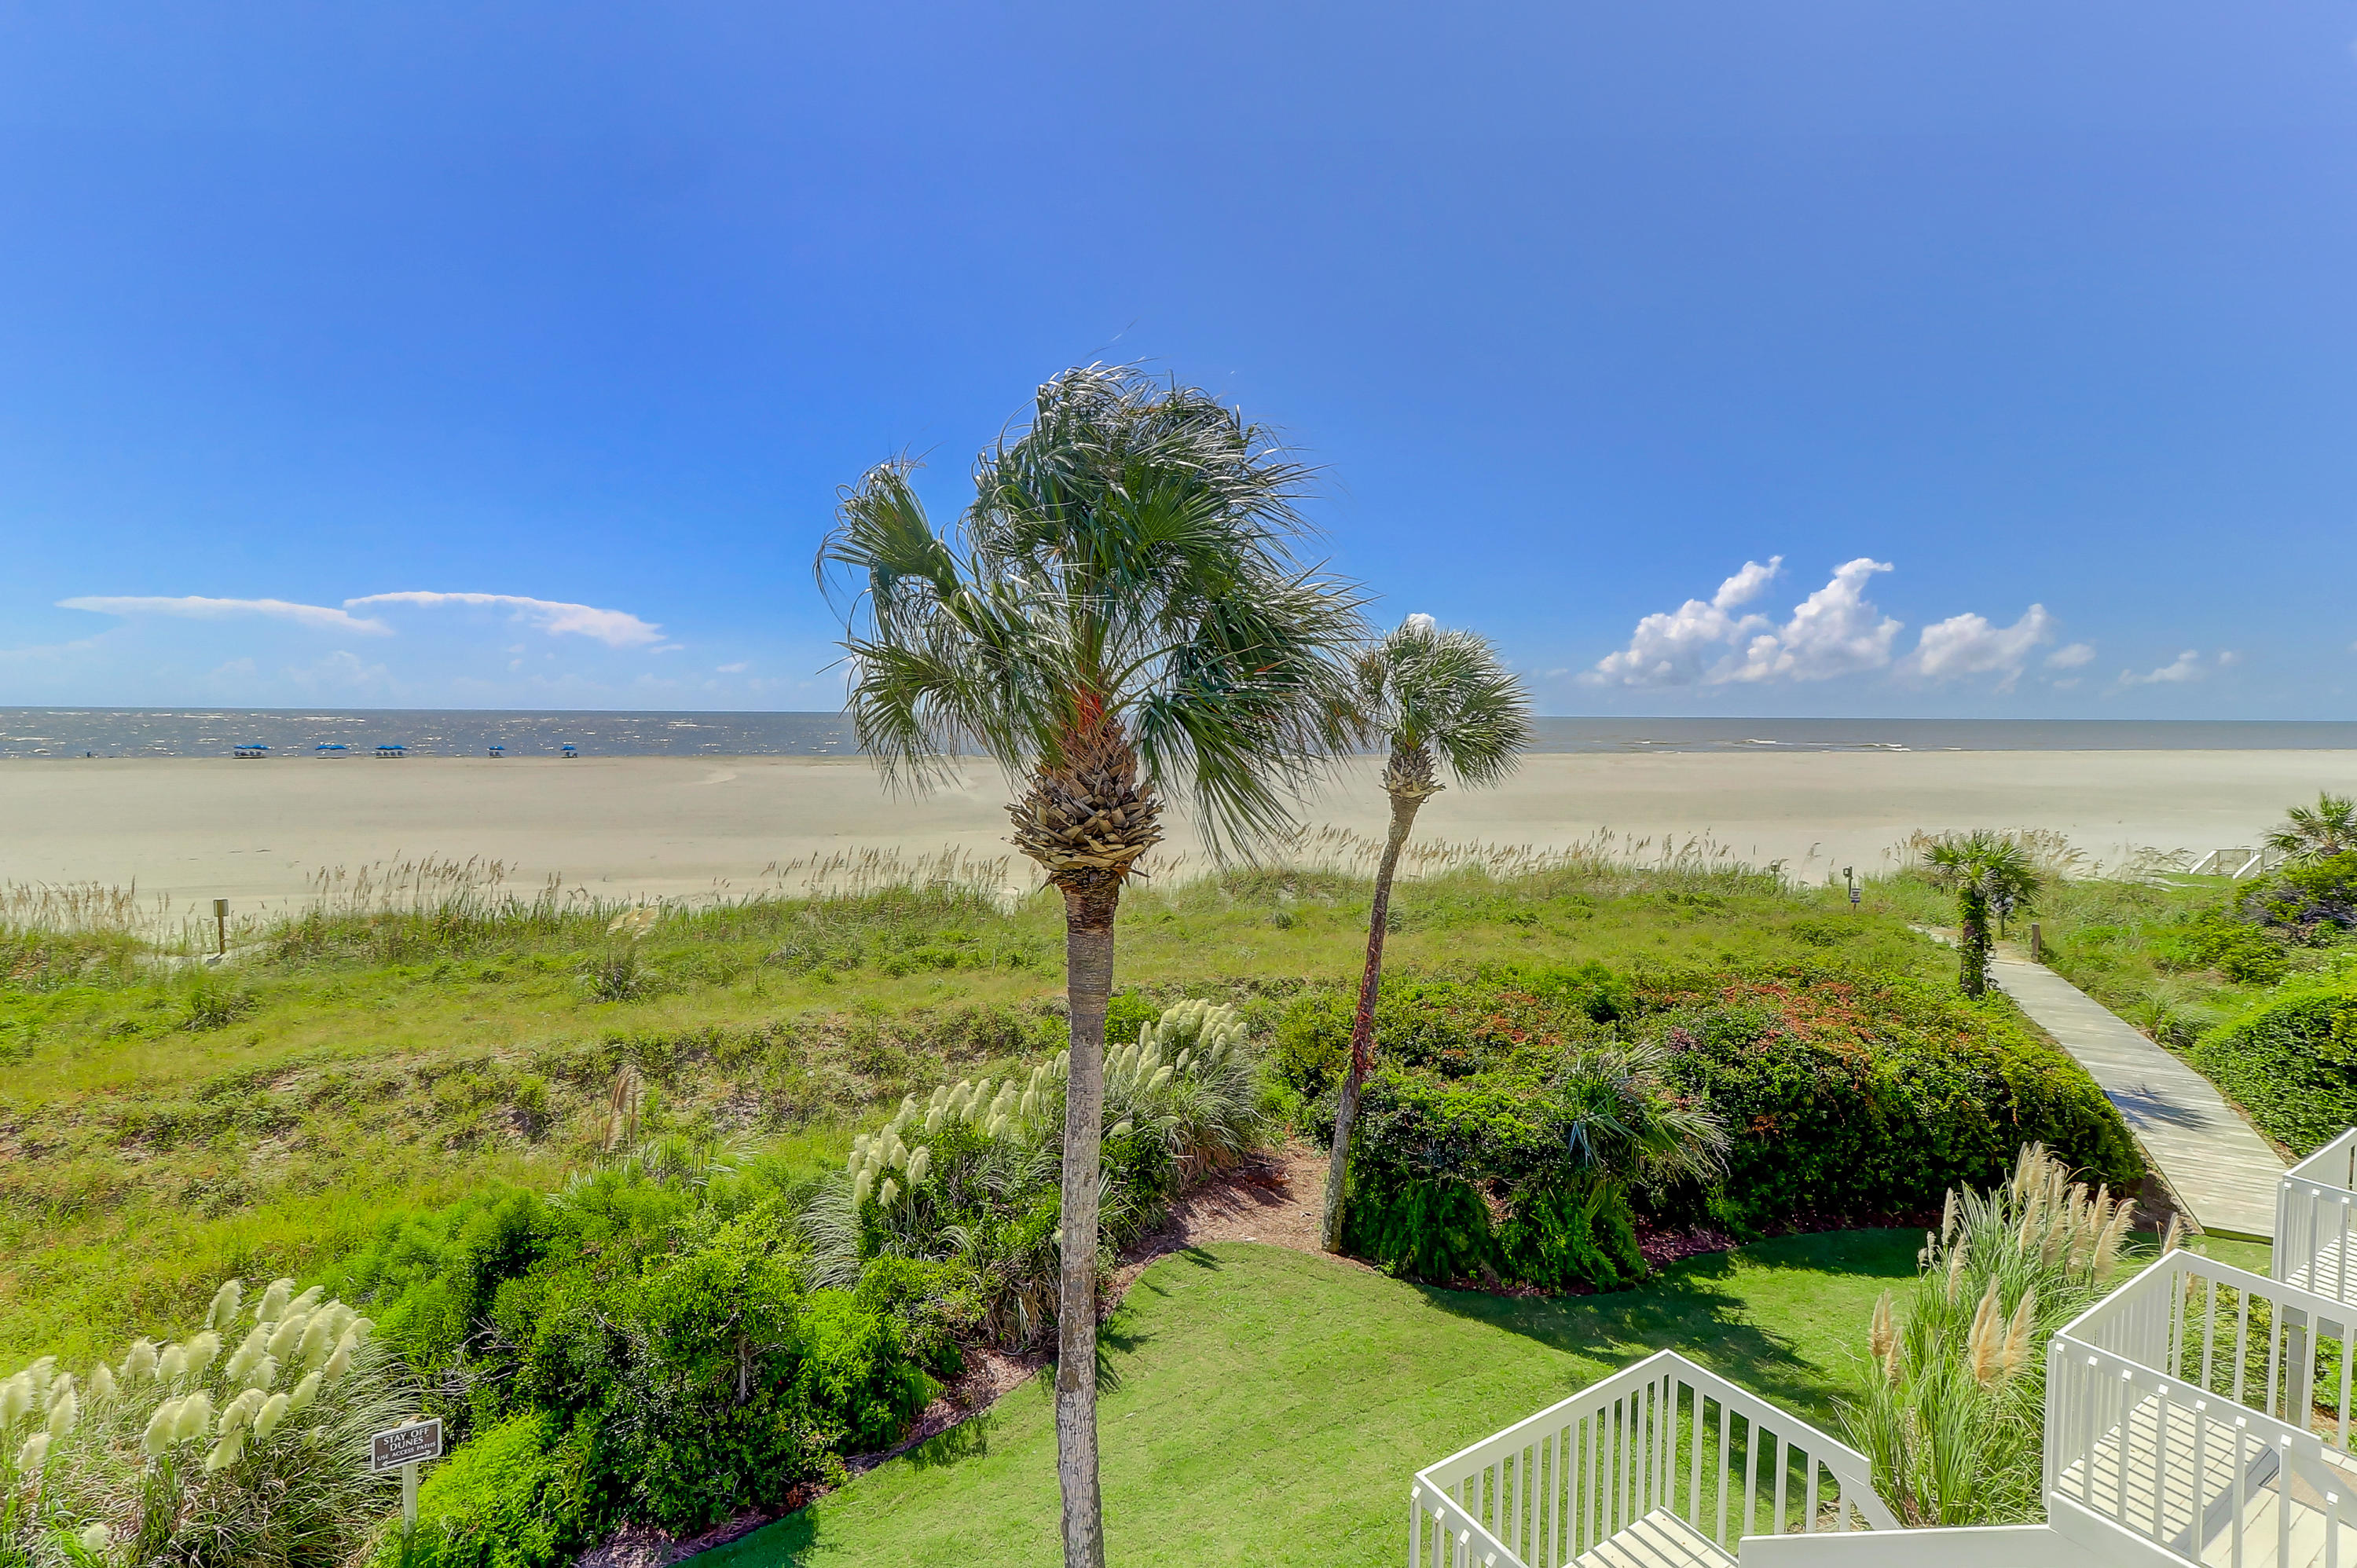 Beach Club Villas Homes For Sale - 33 Beach Club Villas, Isle of Palms, SC - 45